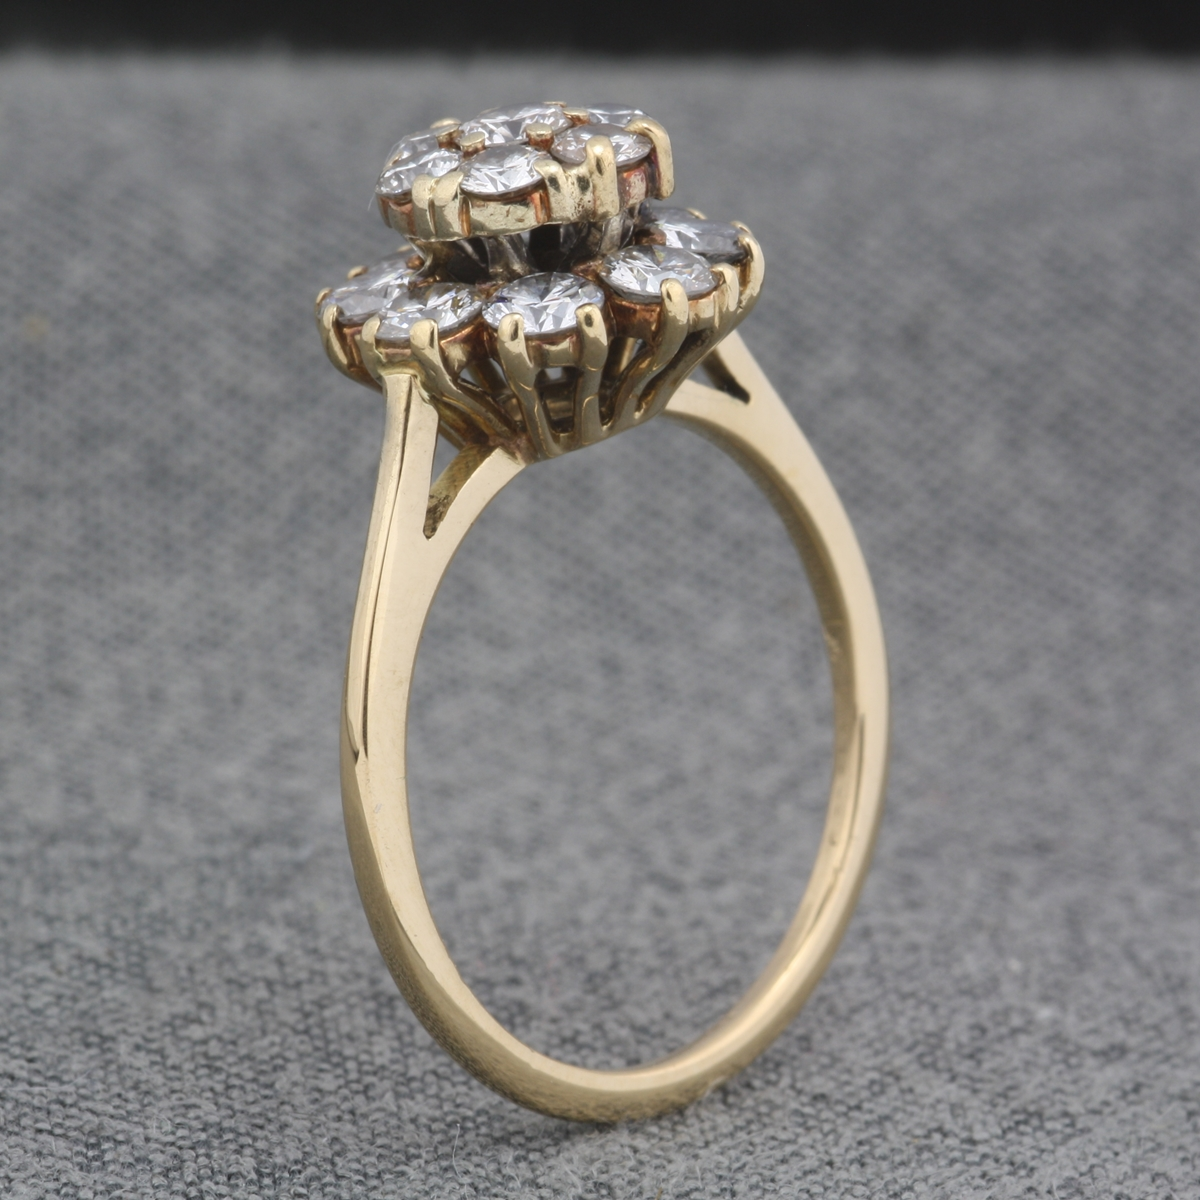 pre wedding budget then buying a quite but t deserve particular owned to you stone buy reasons they don get loupe have think of guide rings your import are engagement the ring partner quality